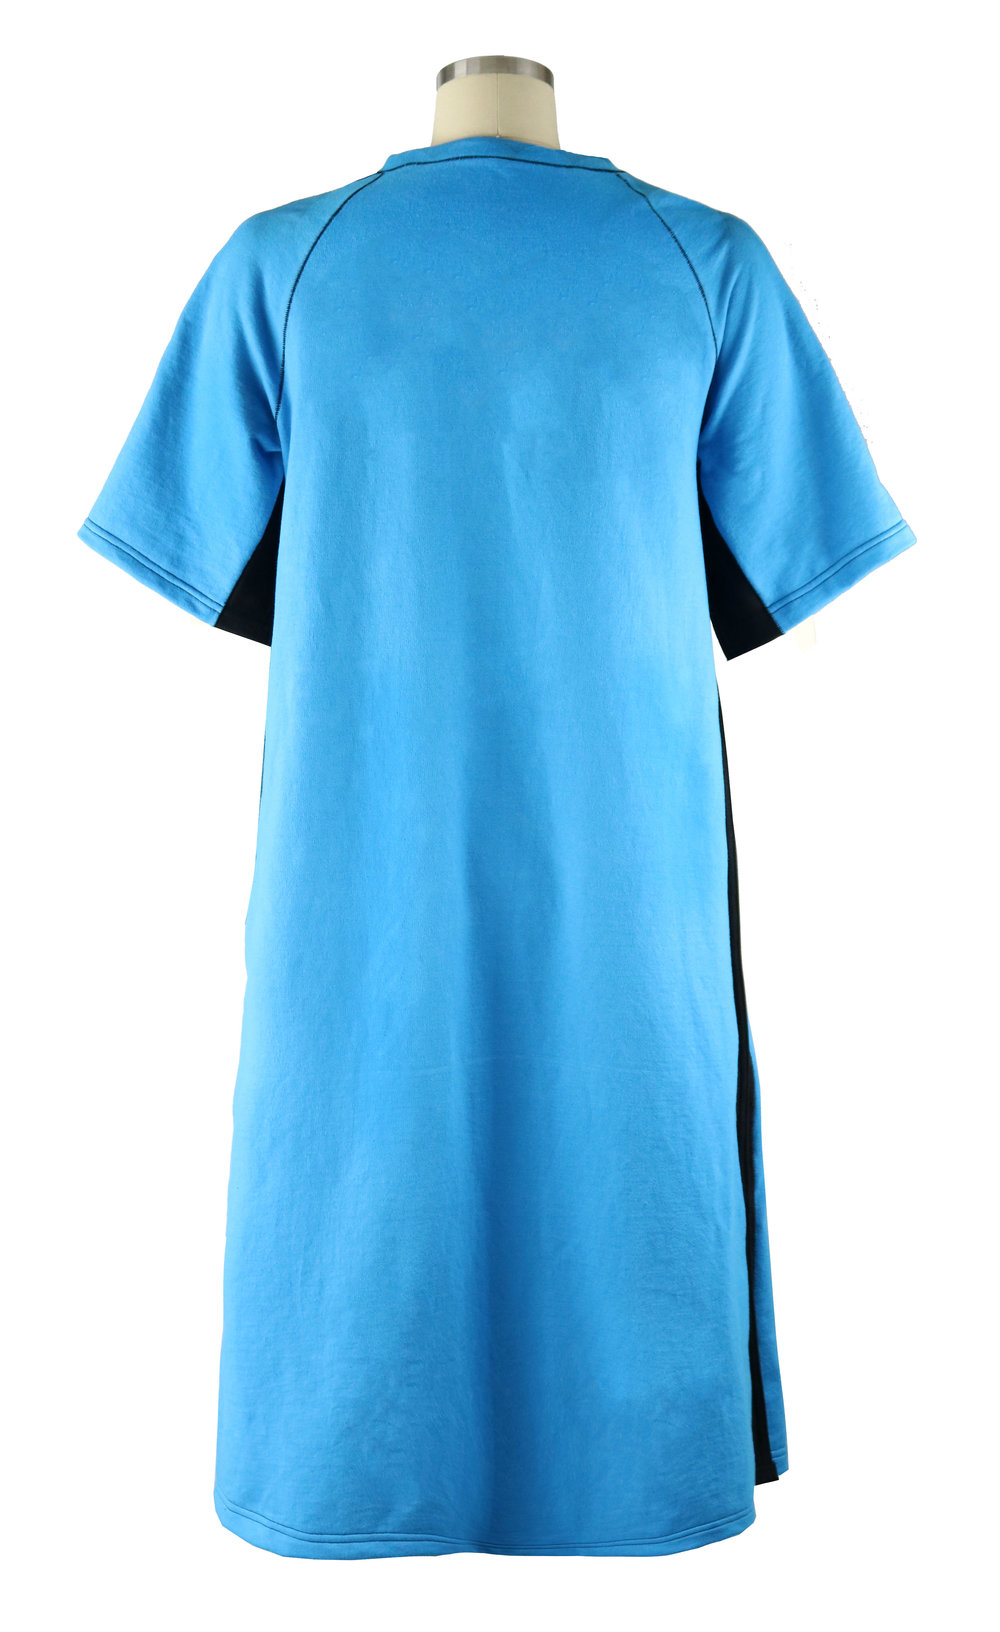 Better Hospital Gown